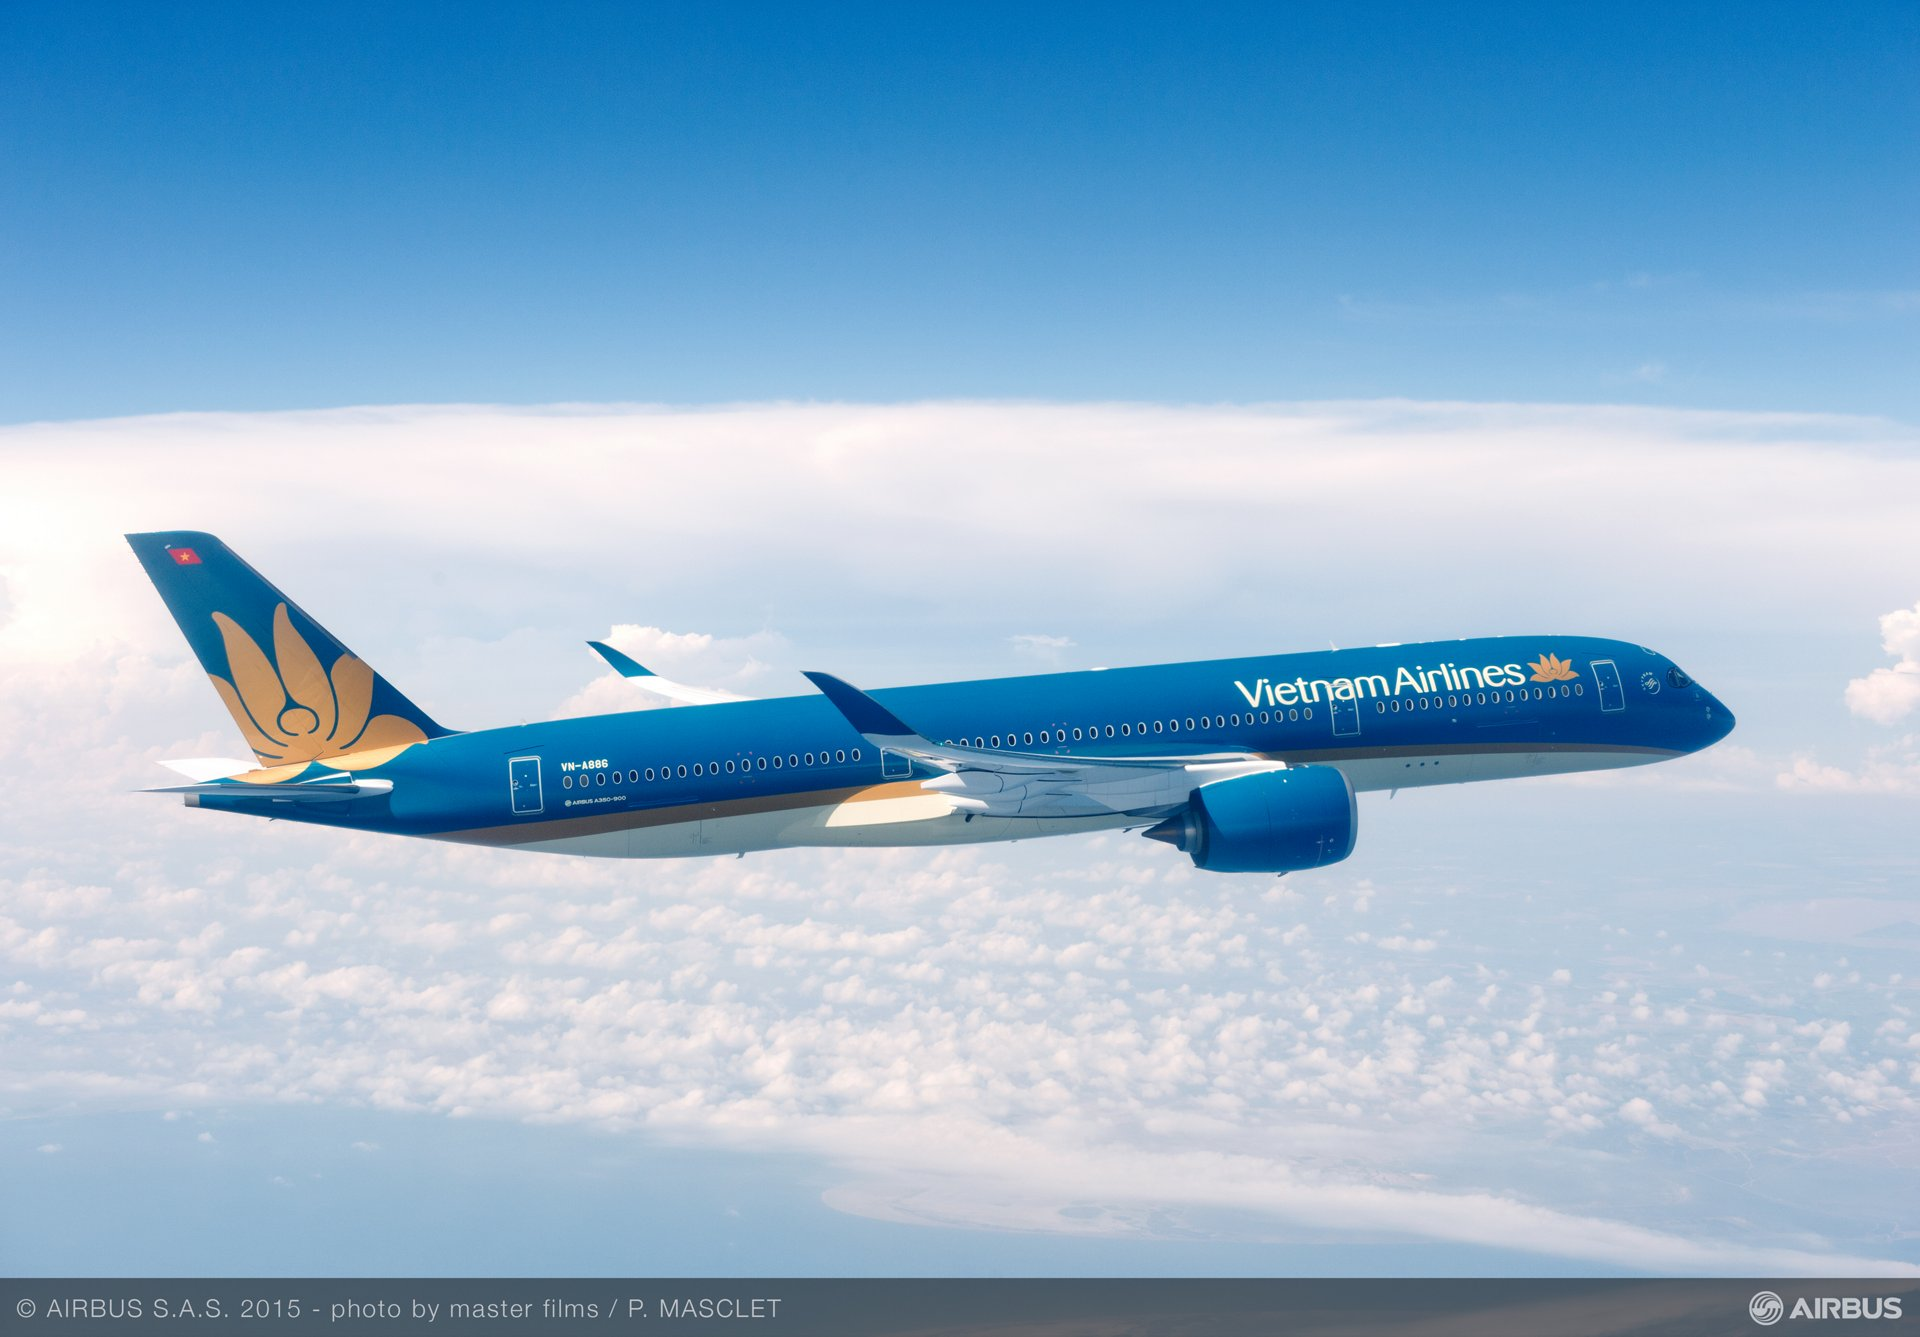 Vietnam Airlines has signed a Memorandum of Understanding for 10 more A350 XWBs, utilising its A350-900 versions of the world's newest widebody jetliner on non-stop services to the United States